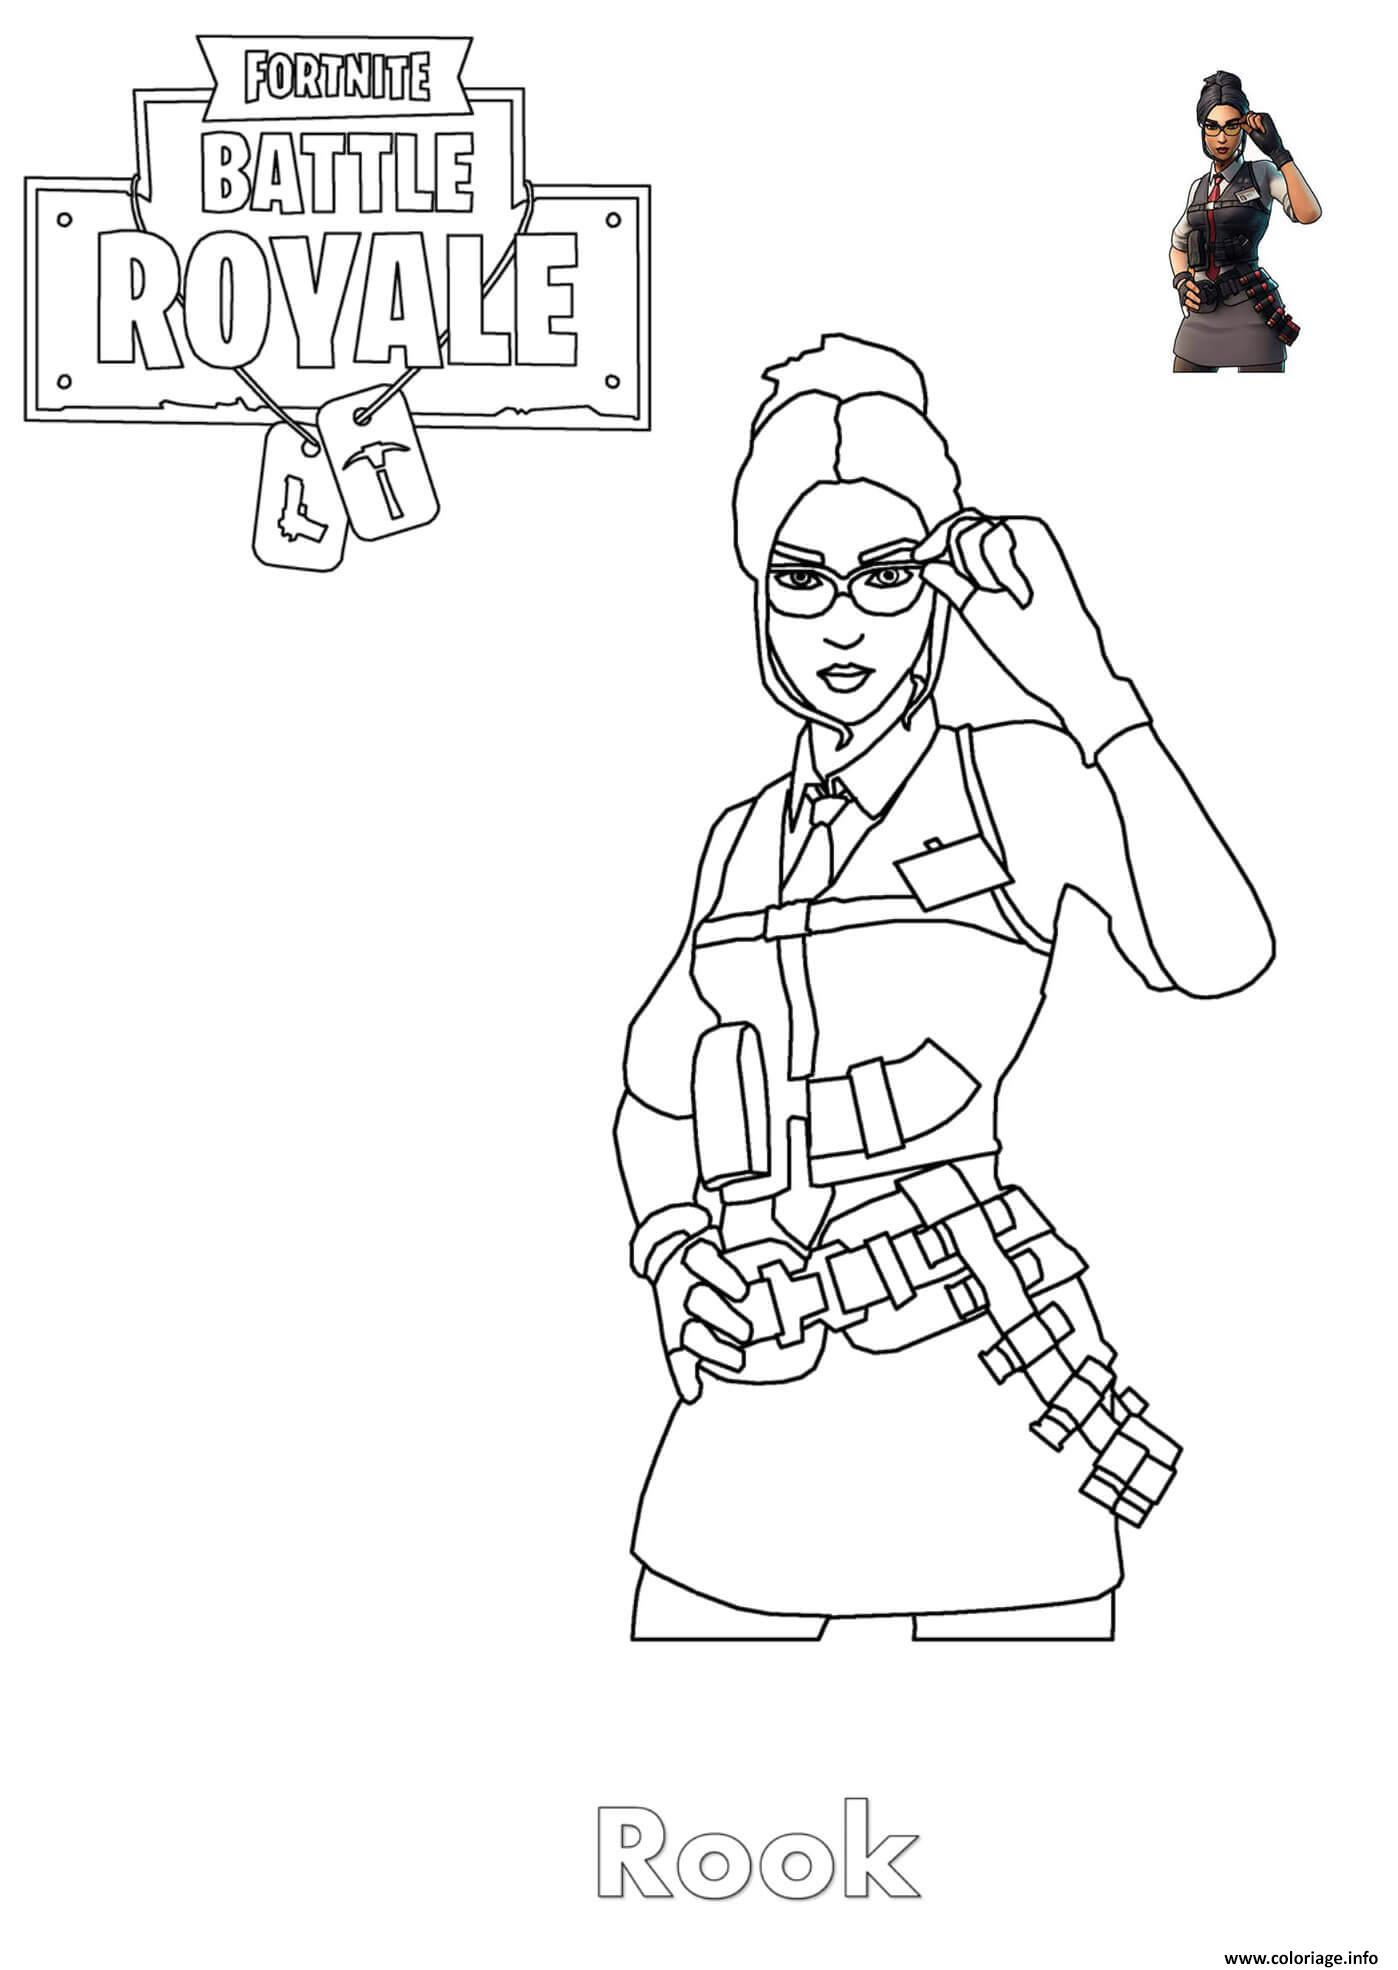 Coloriage rook fortnite girl dessin - Dessins imprimer ...